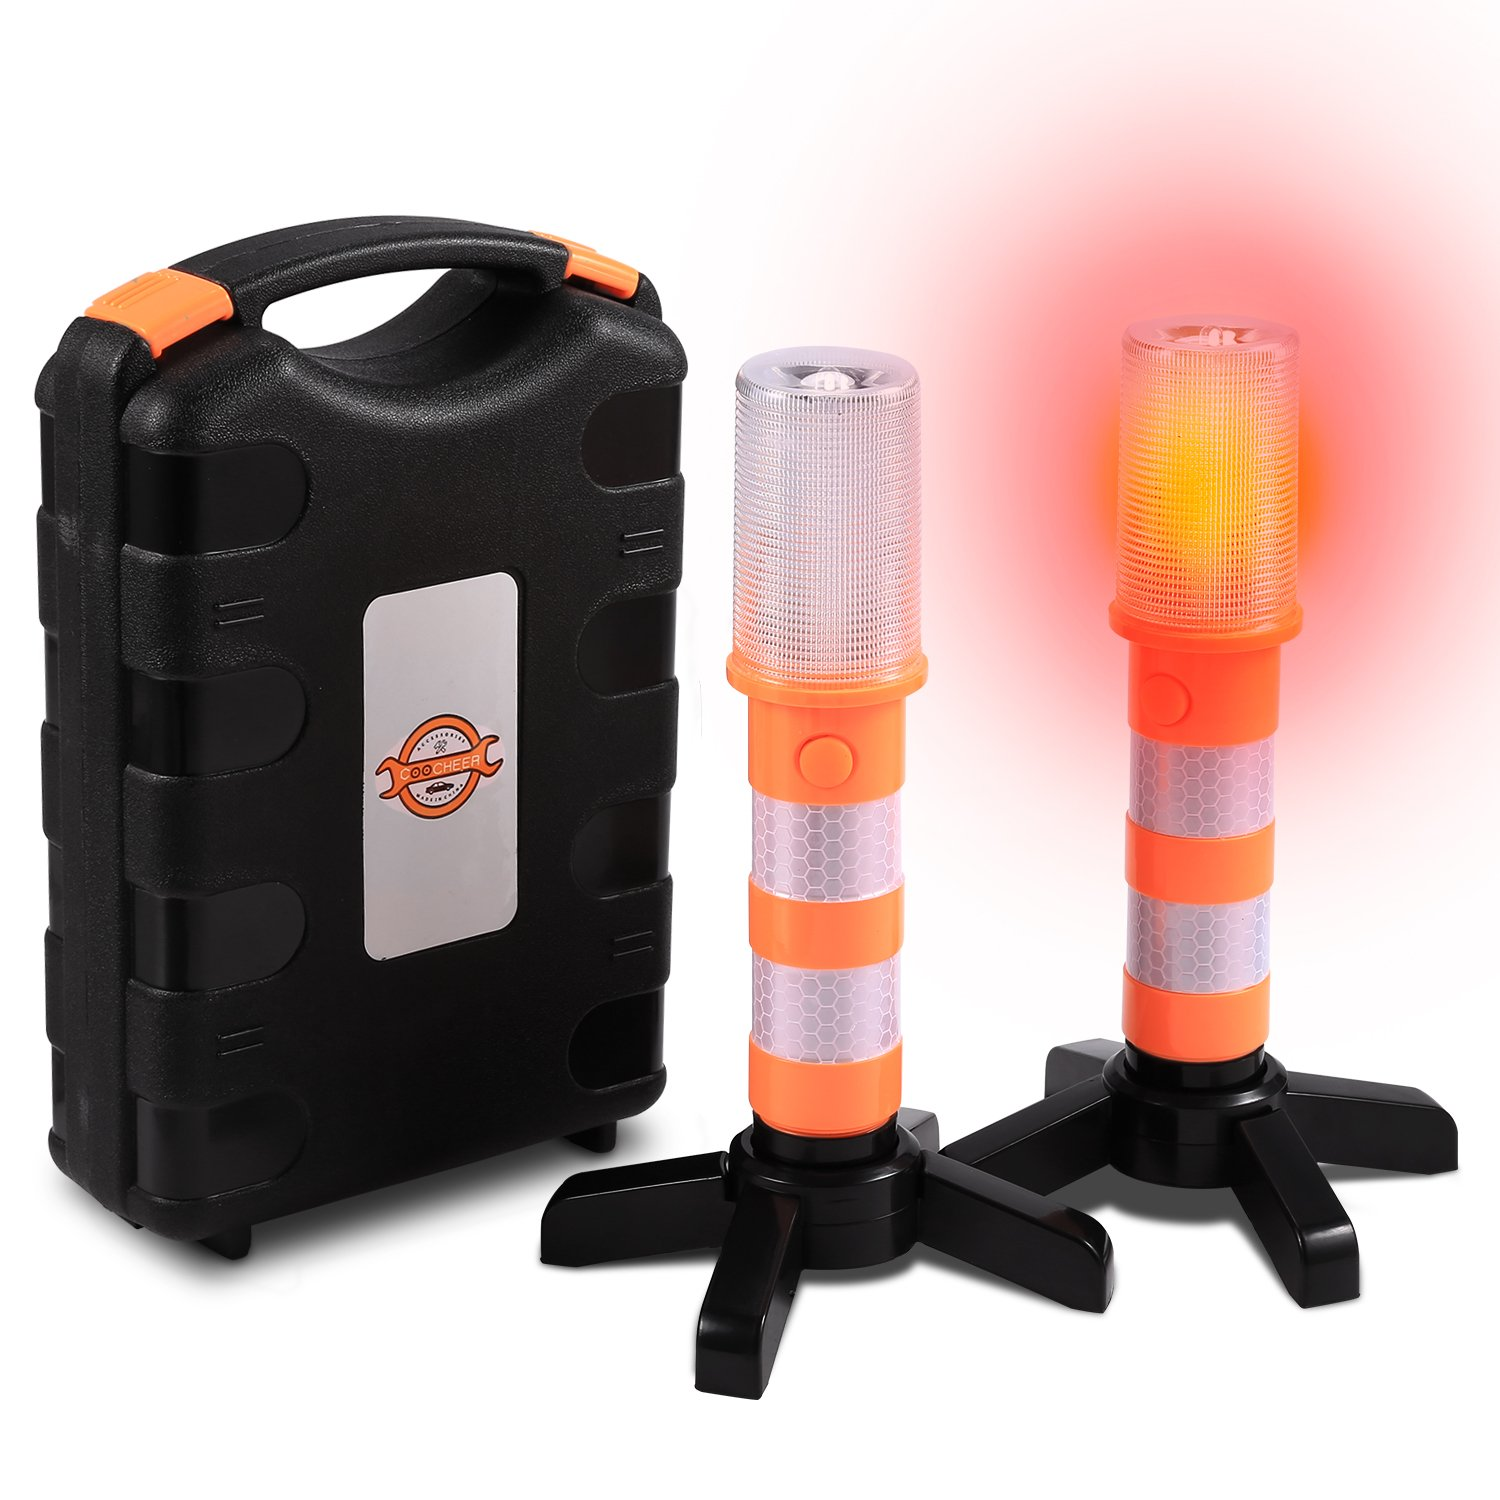 Sailnovo 2 LED Emergency Roadside Flares- Red Road Beacon Safety Strobe Light Warning Signal with Magnetic Base and Upright Stand, Storage Case for Car Marine Vehicles Trucks